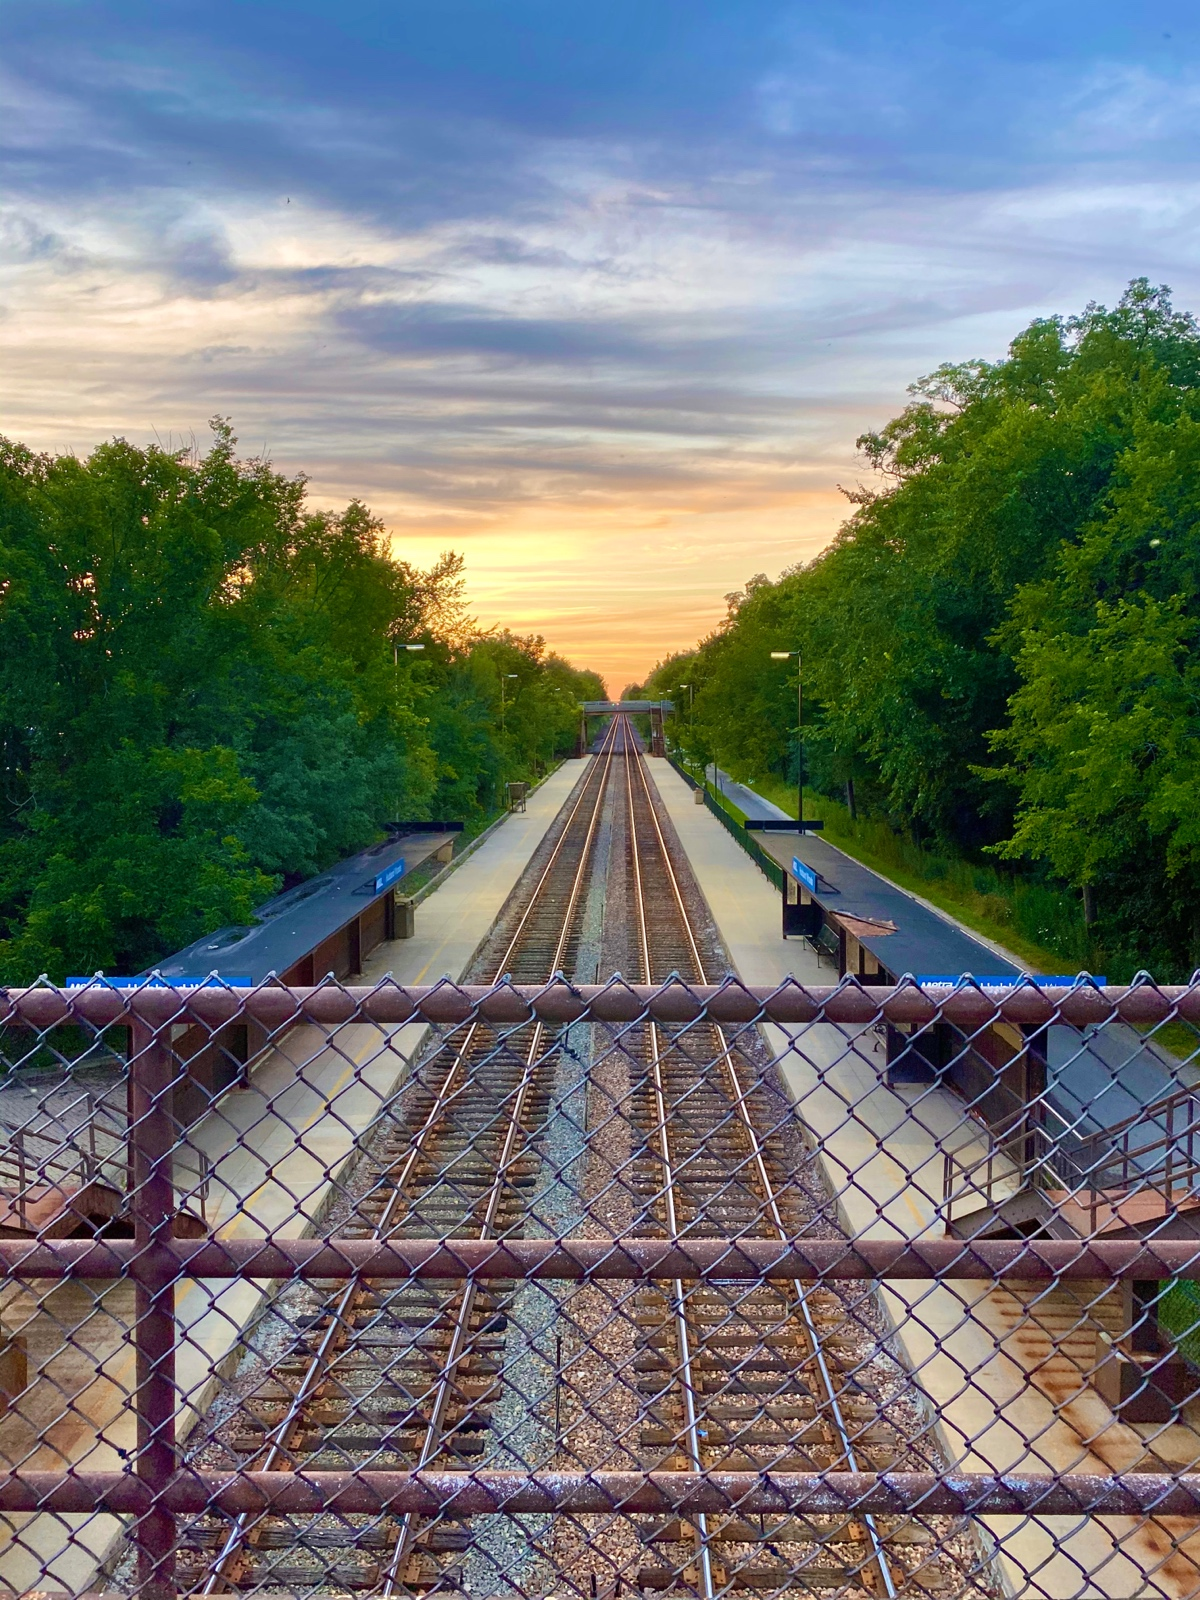 Rails and Railings…The Beautiful Journey Awaits